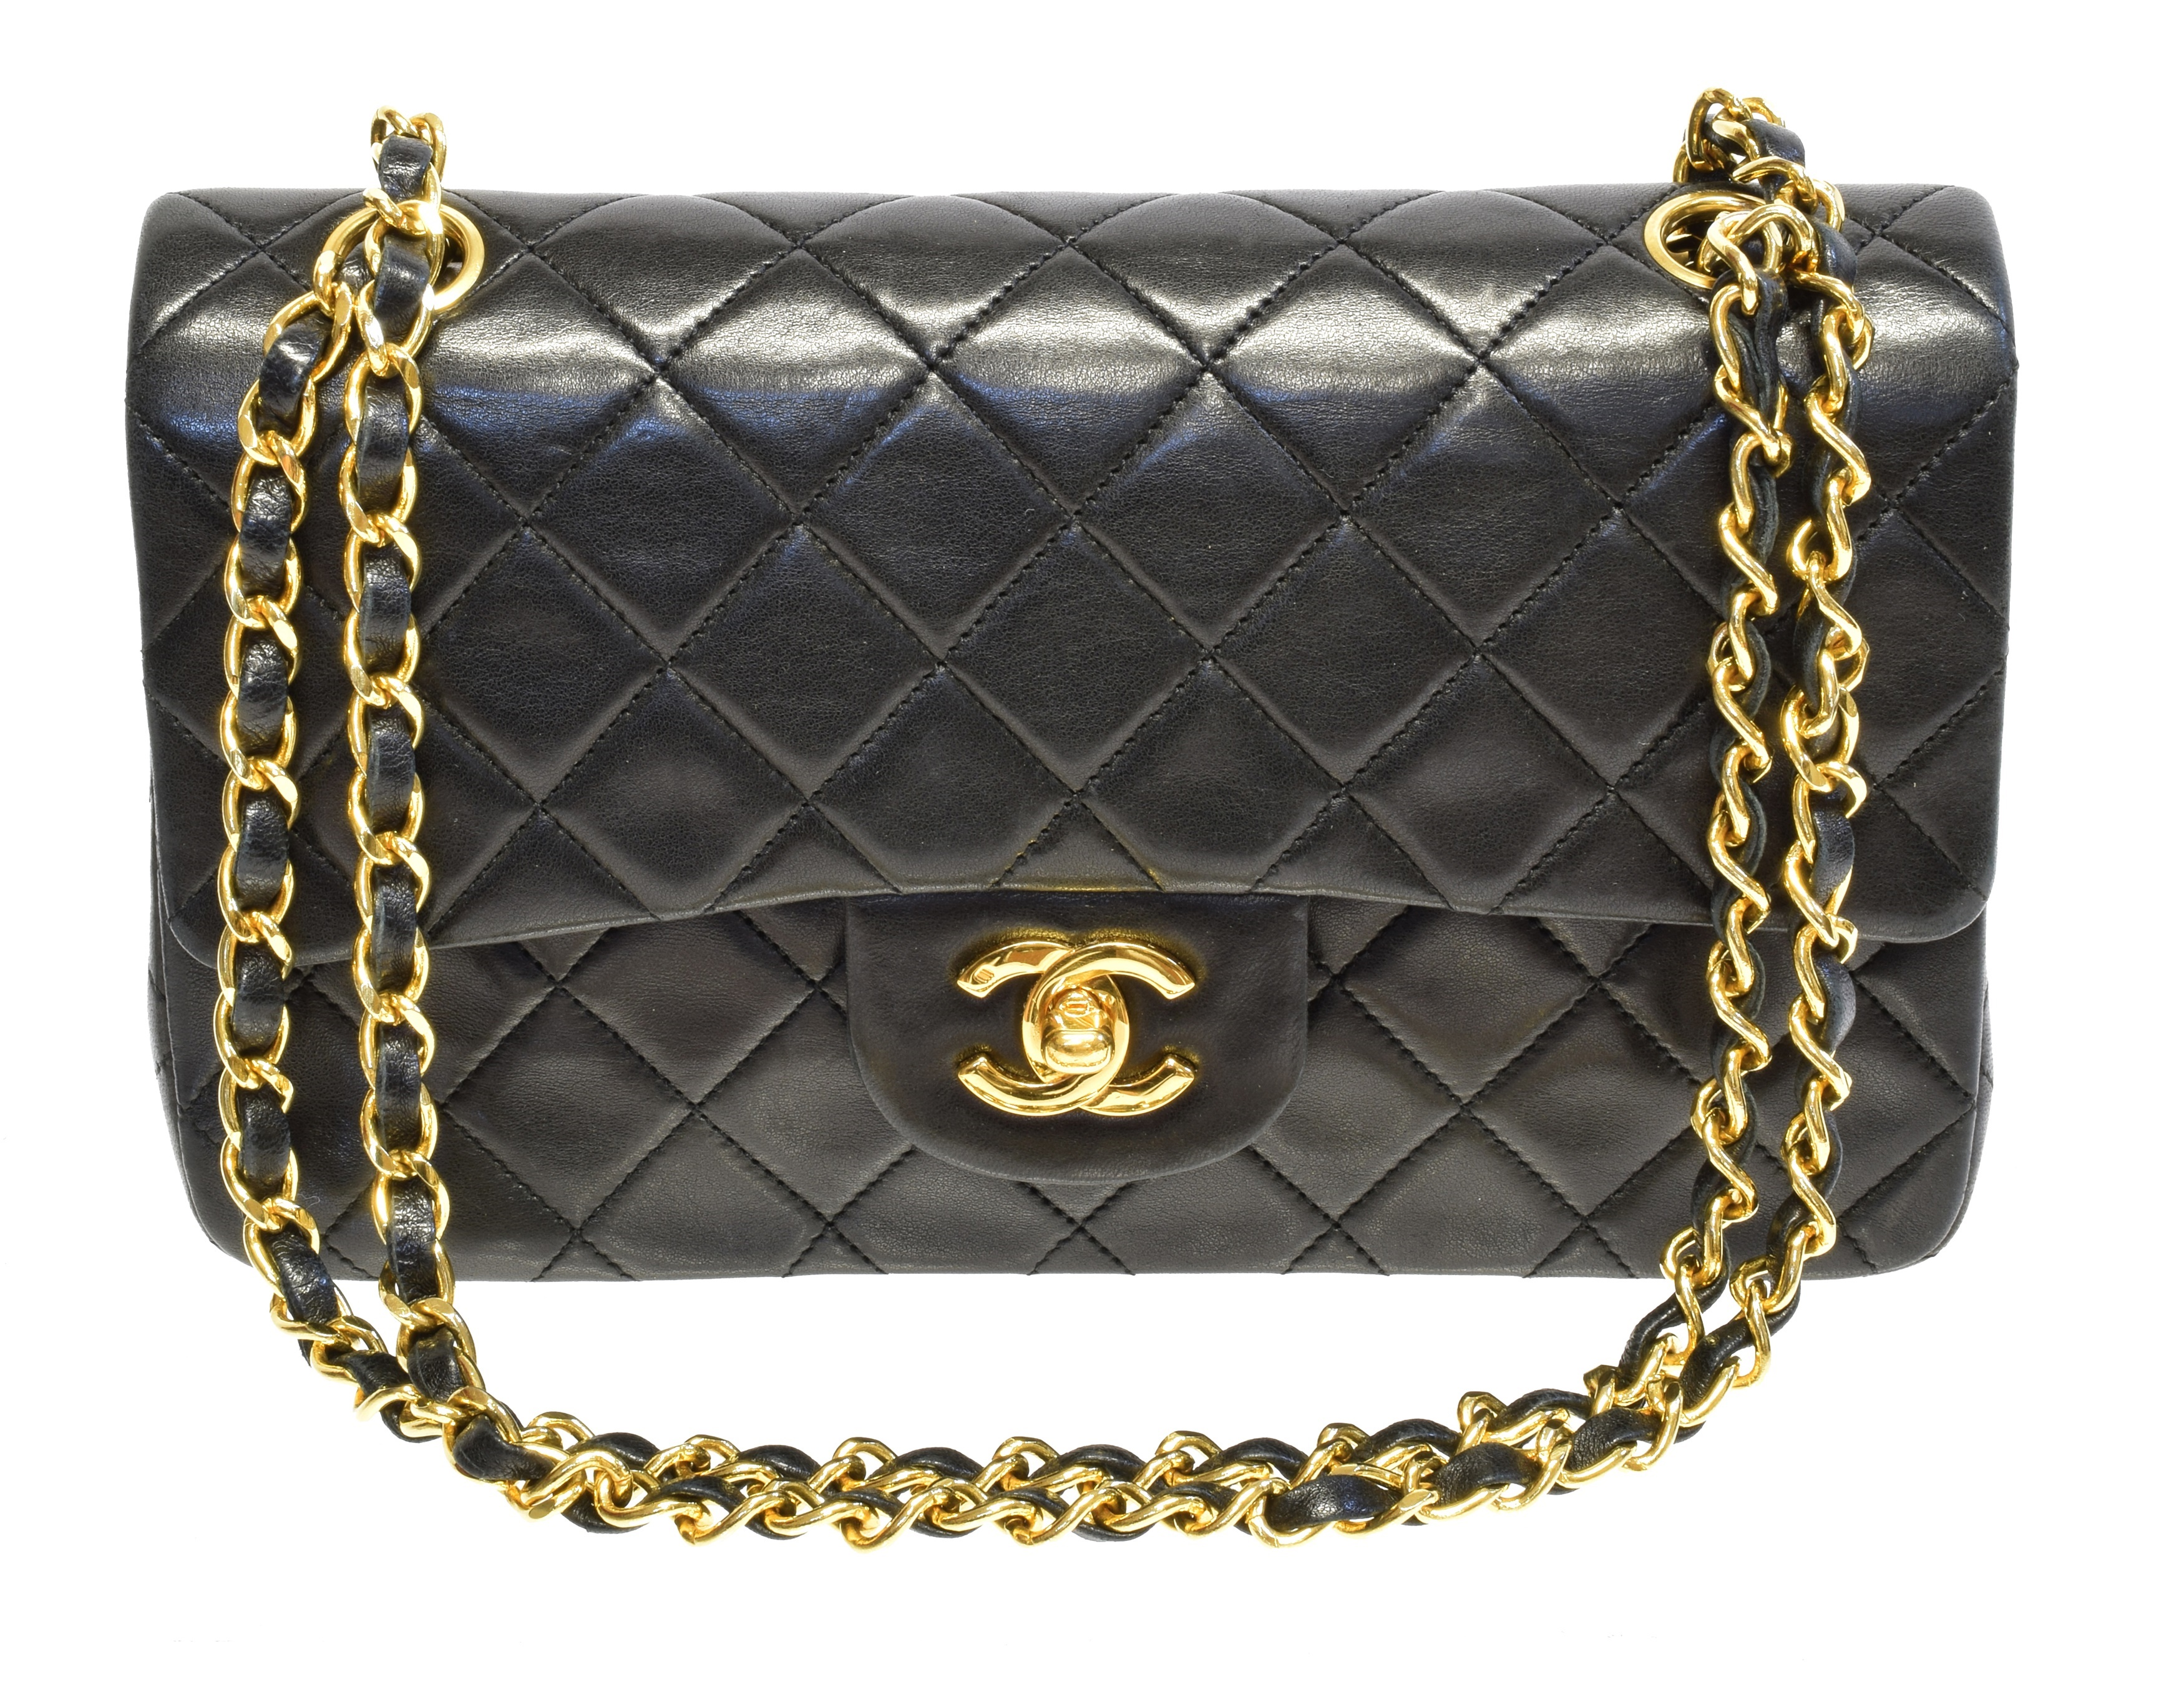 A Chanel Classic Double Flap Bag, circa 1989-91, the black quilted leather exterior with gold-tone hardware and chain handles, serial no. 1601799, with maker's authenticity card.  23x15x6.8cm  Sold for £3,538